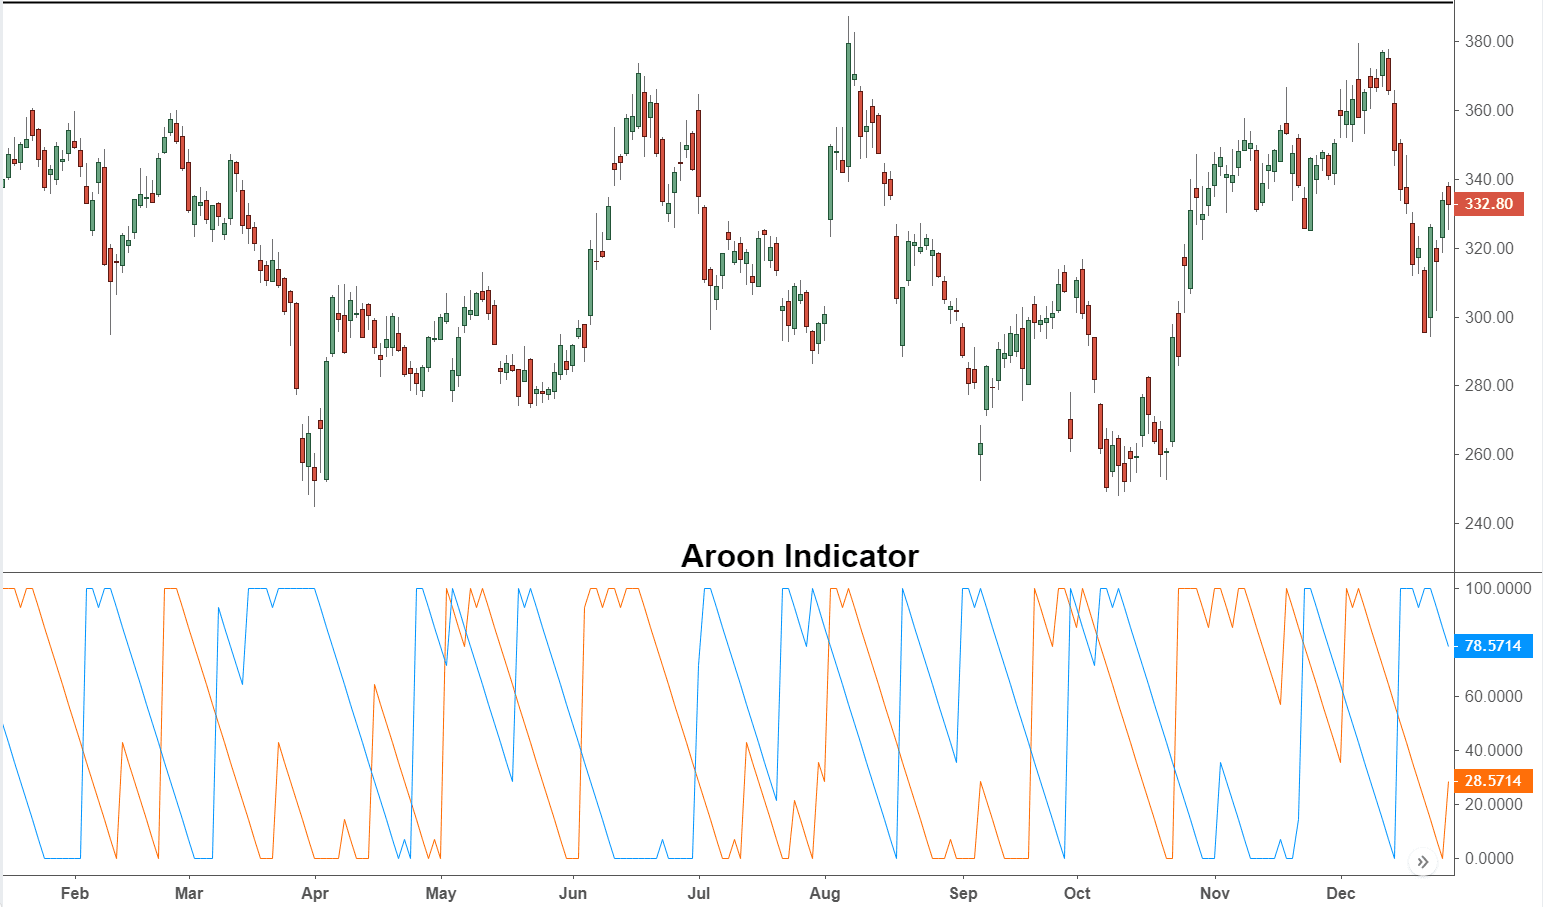 Aroon Indicator Definition and Uses